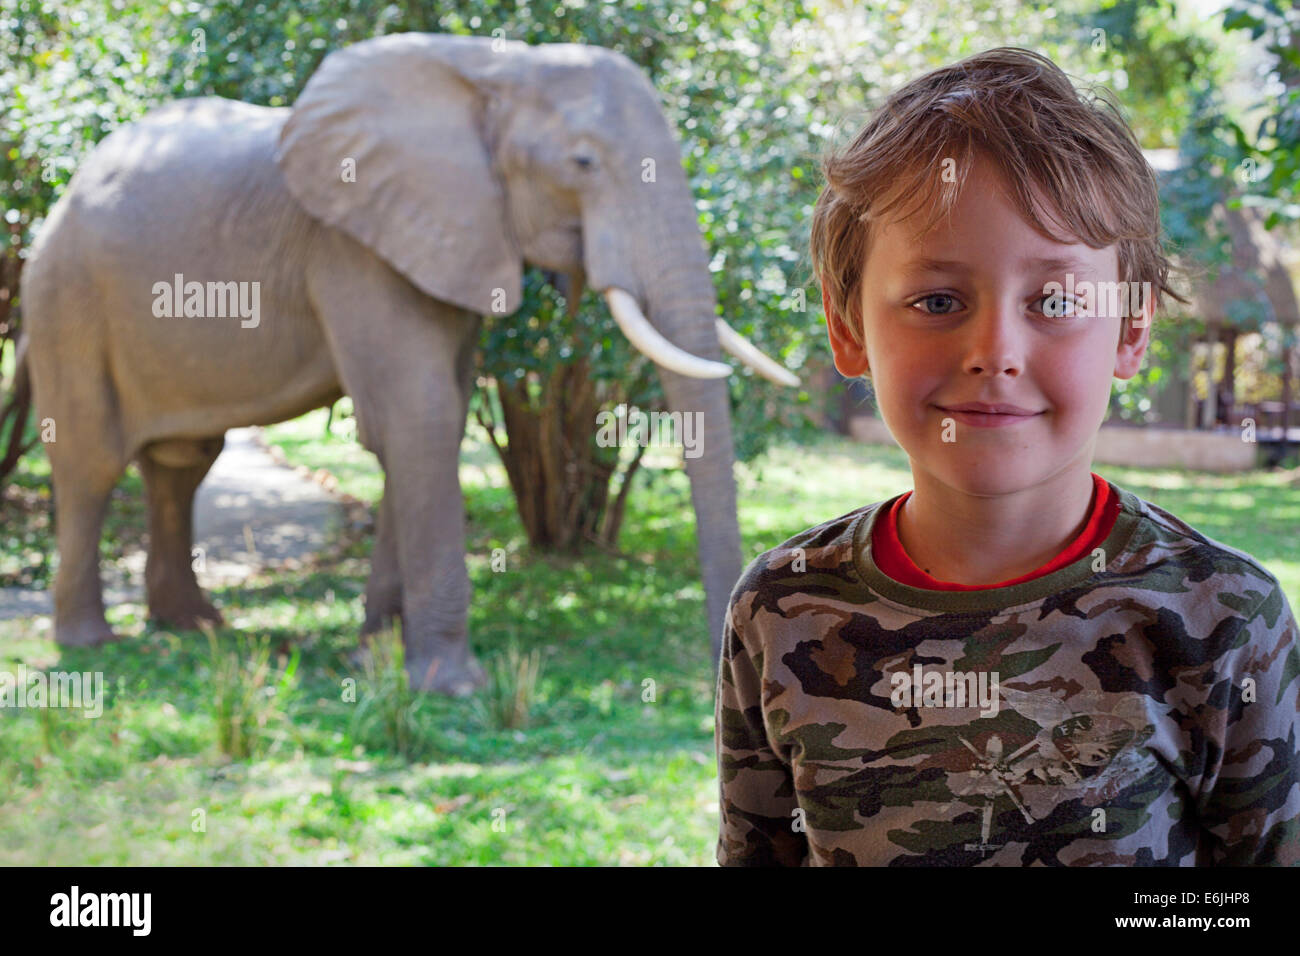 Young boy and an elephant close encounter, Zambia - Stock Image